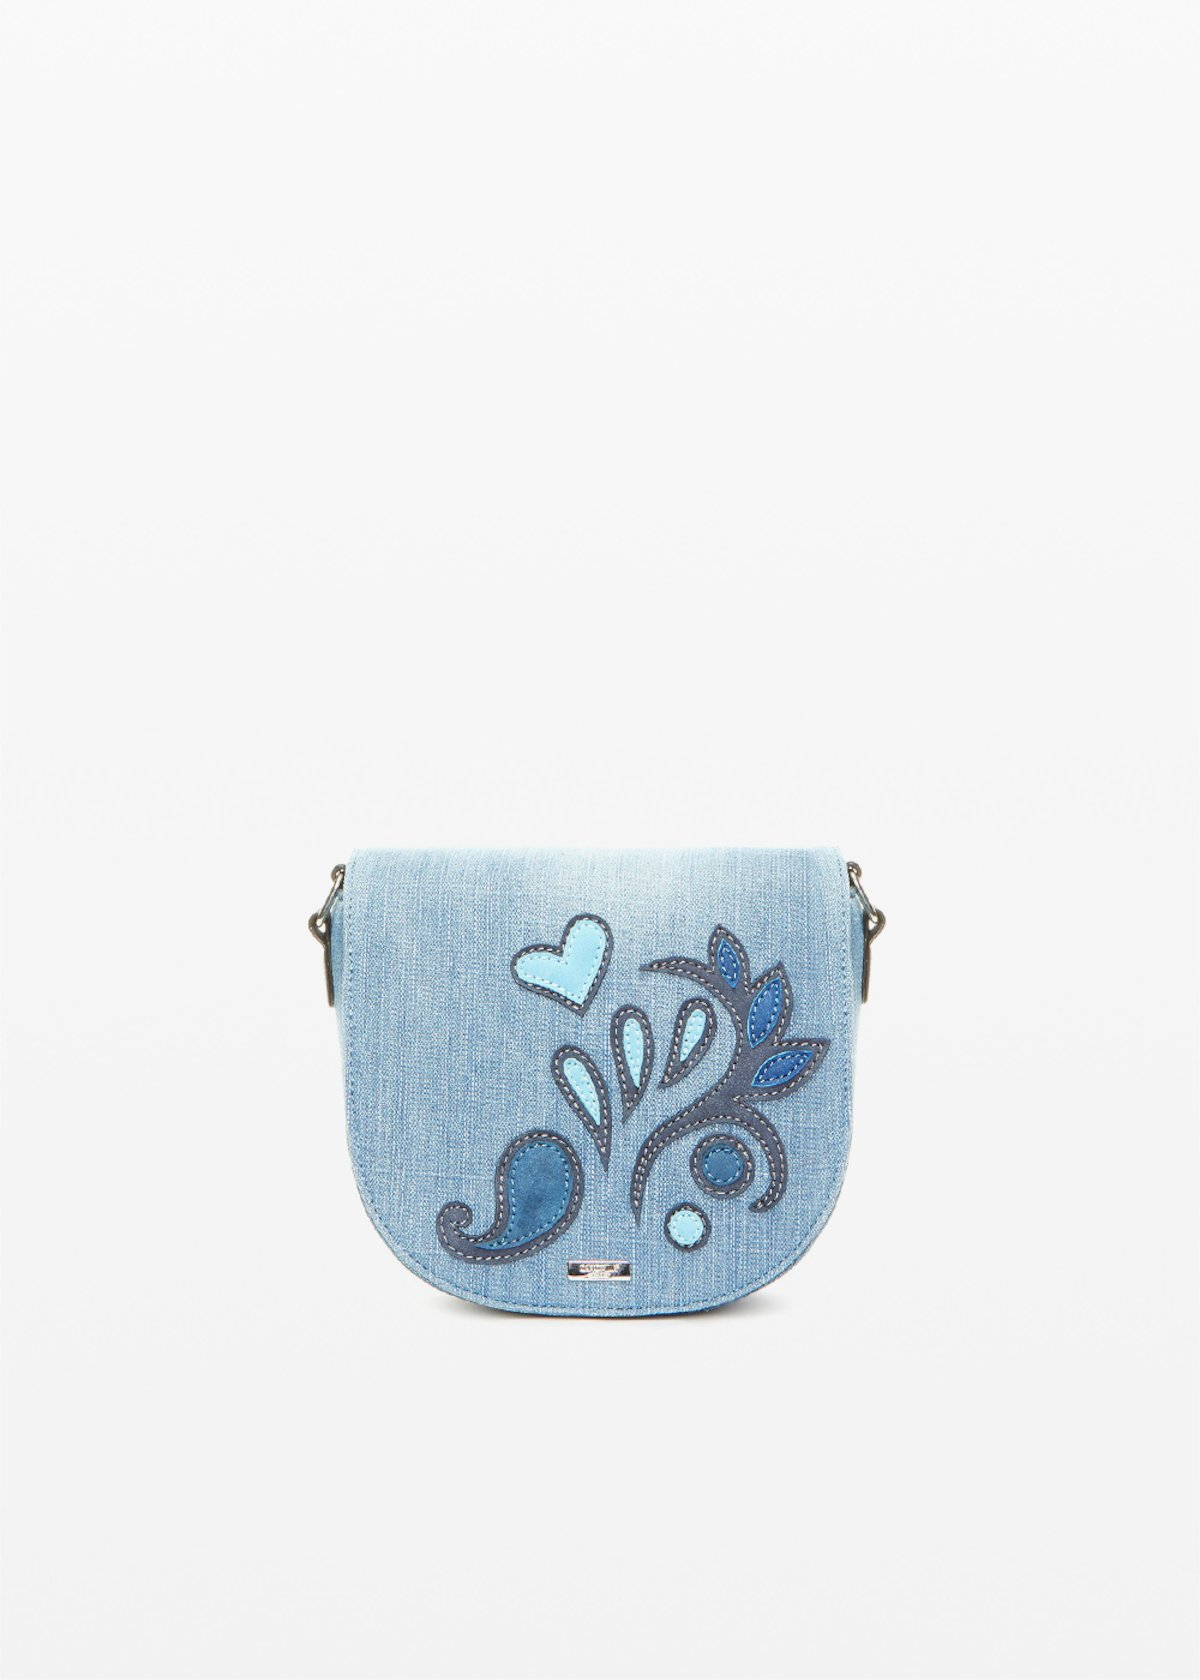 Crossbody bag Blerry effetto denim con patch flower - Denim - Donna - Immagine categoria